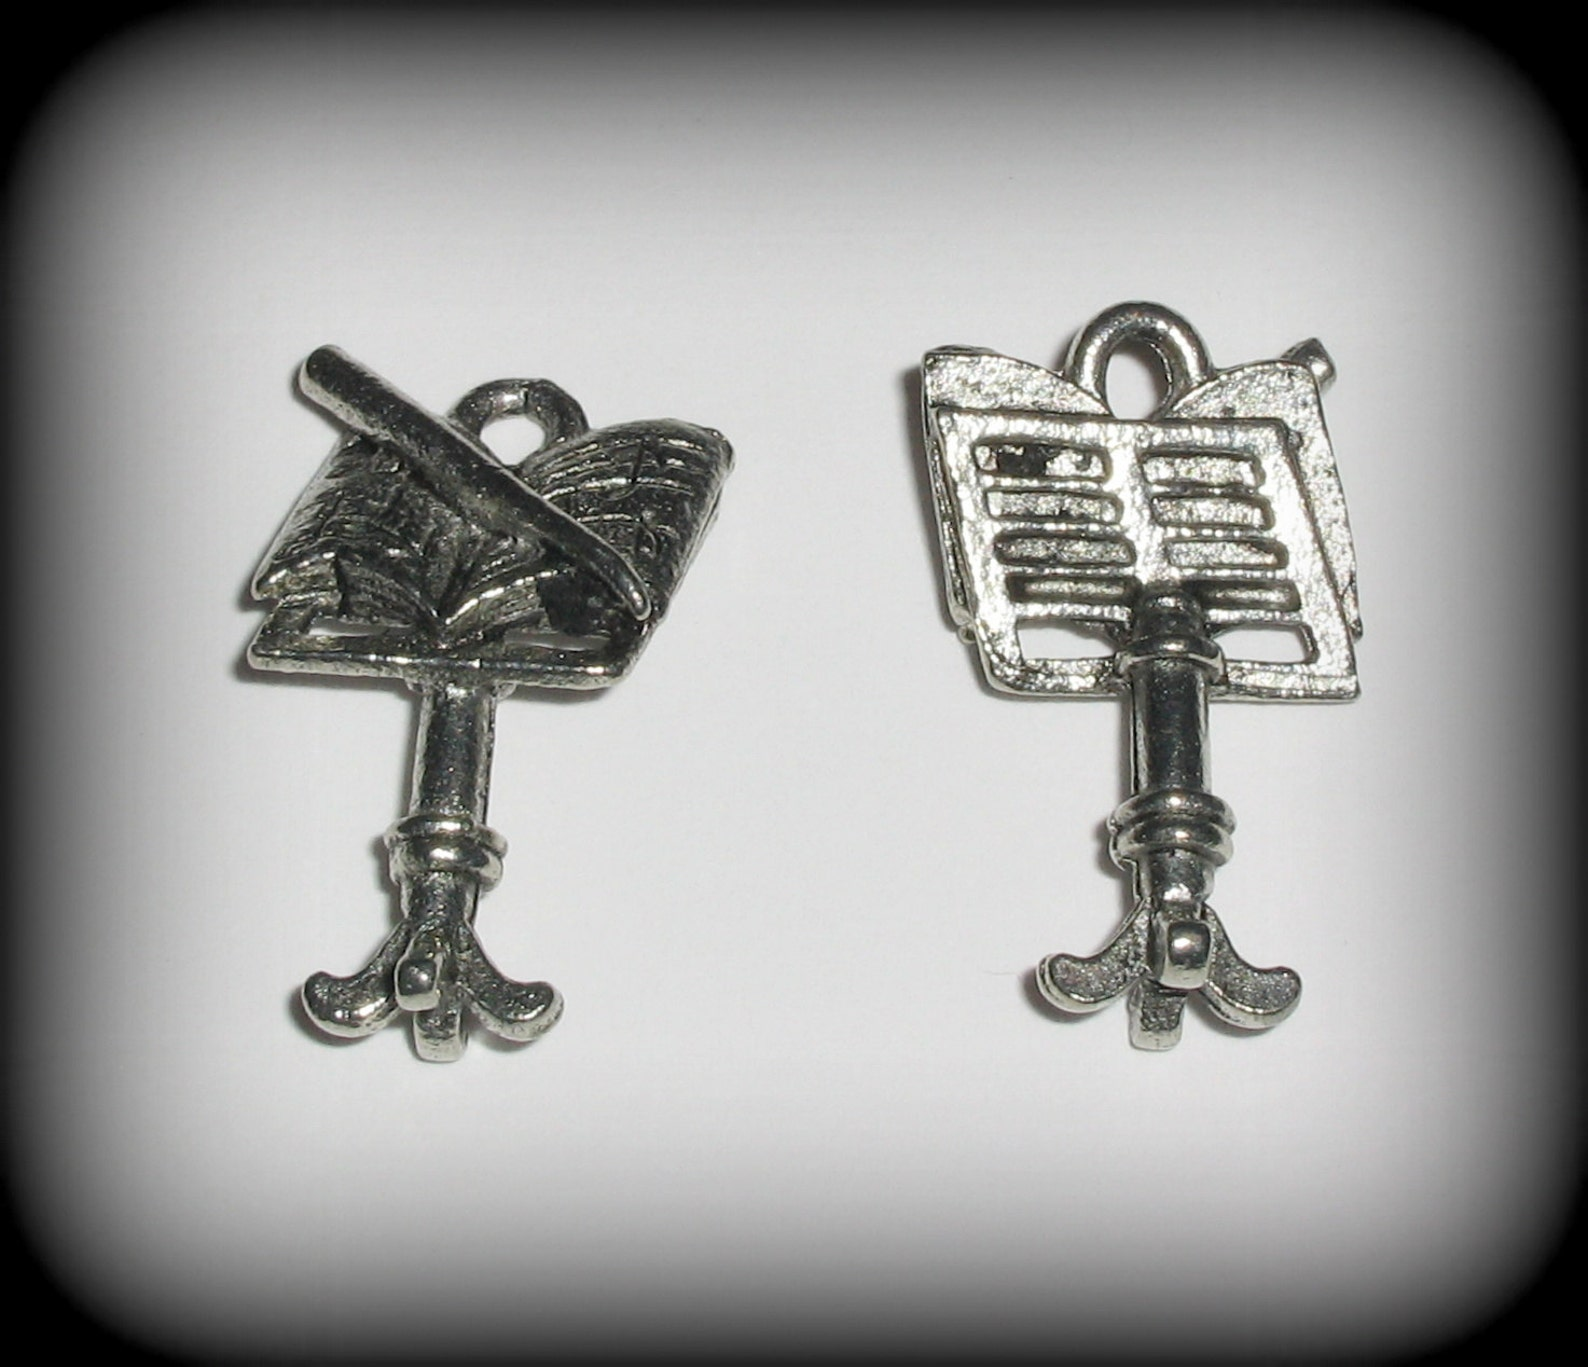 8 silver pewter ballet shoe charms (qb41) - new charm